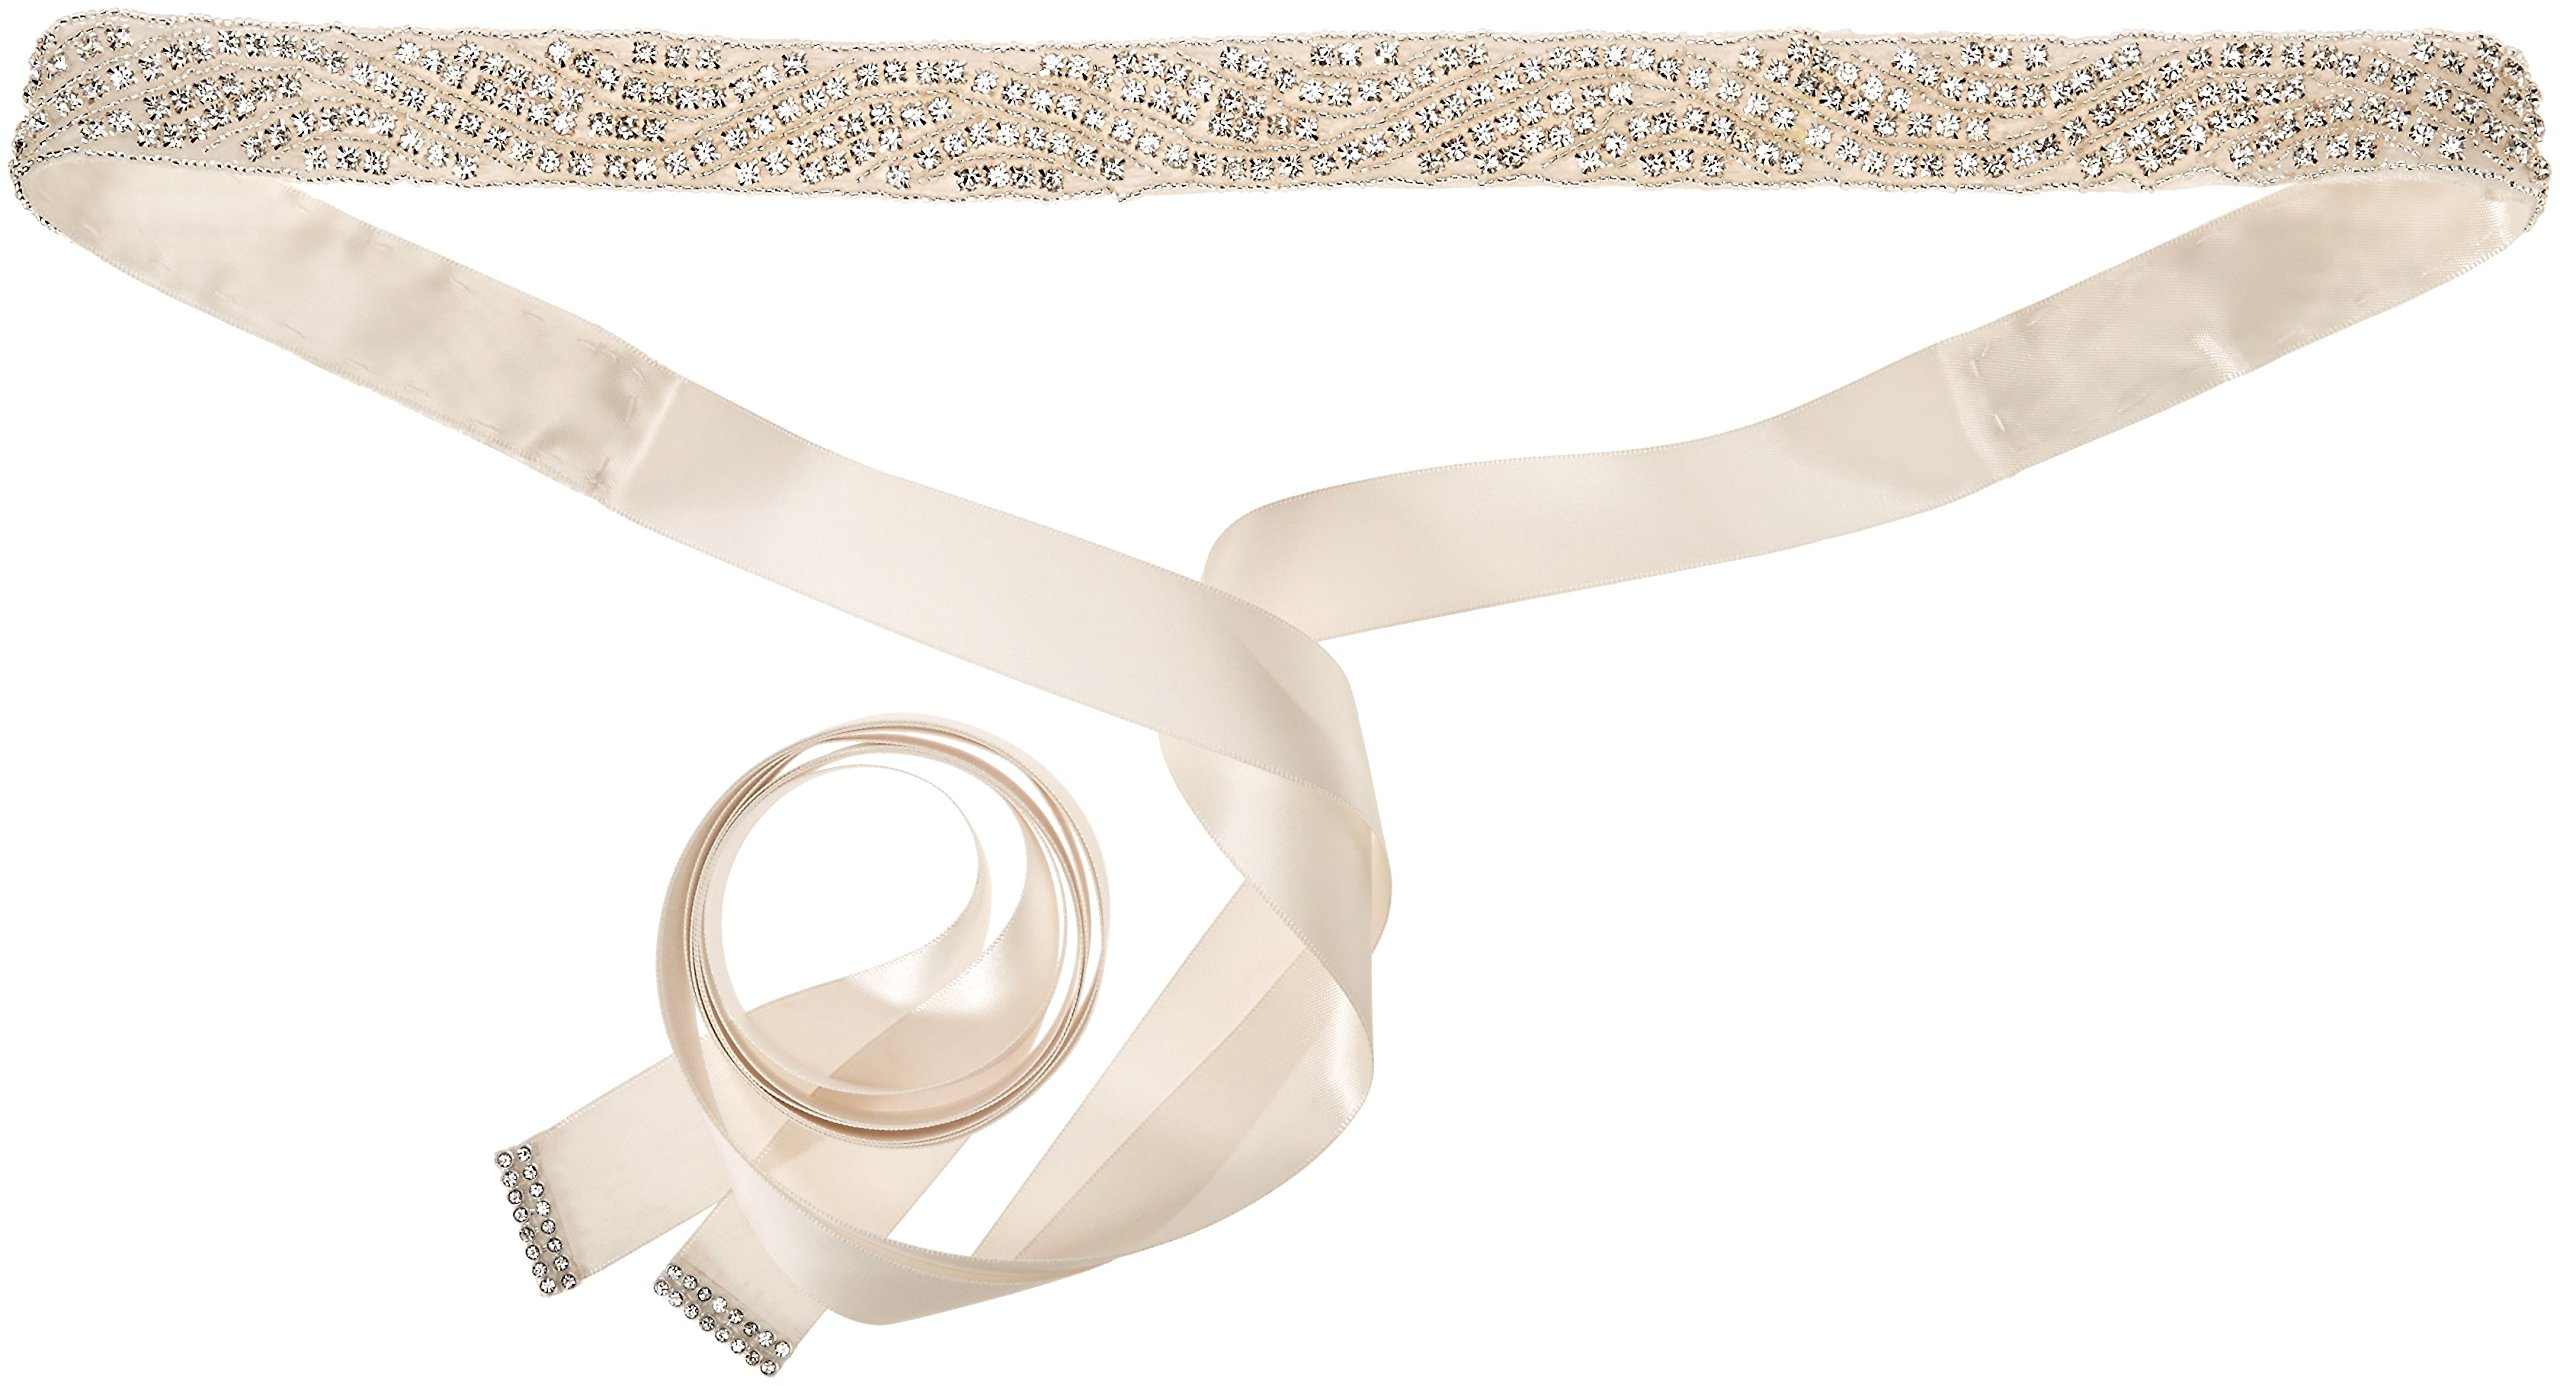 Nina Women's Pazely Art Deco Satin Bridal Belt, Ivory One Size